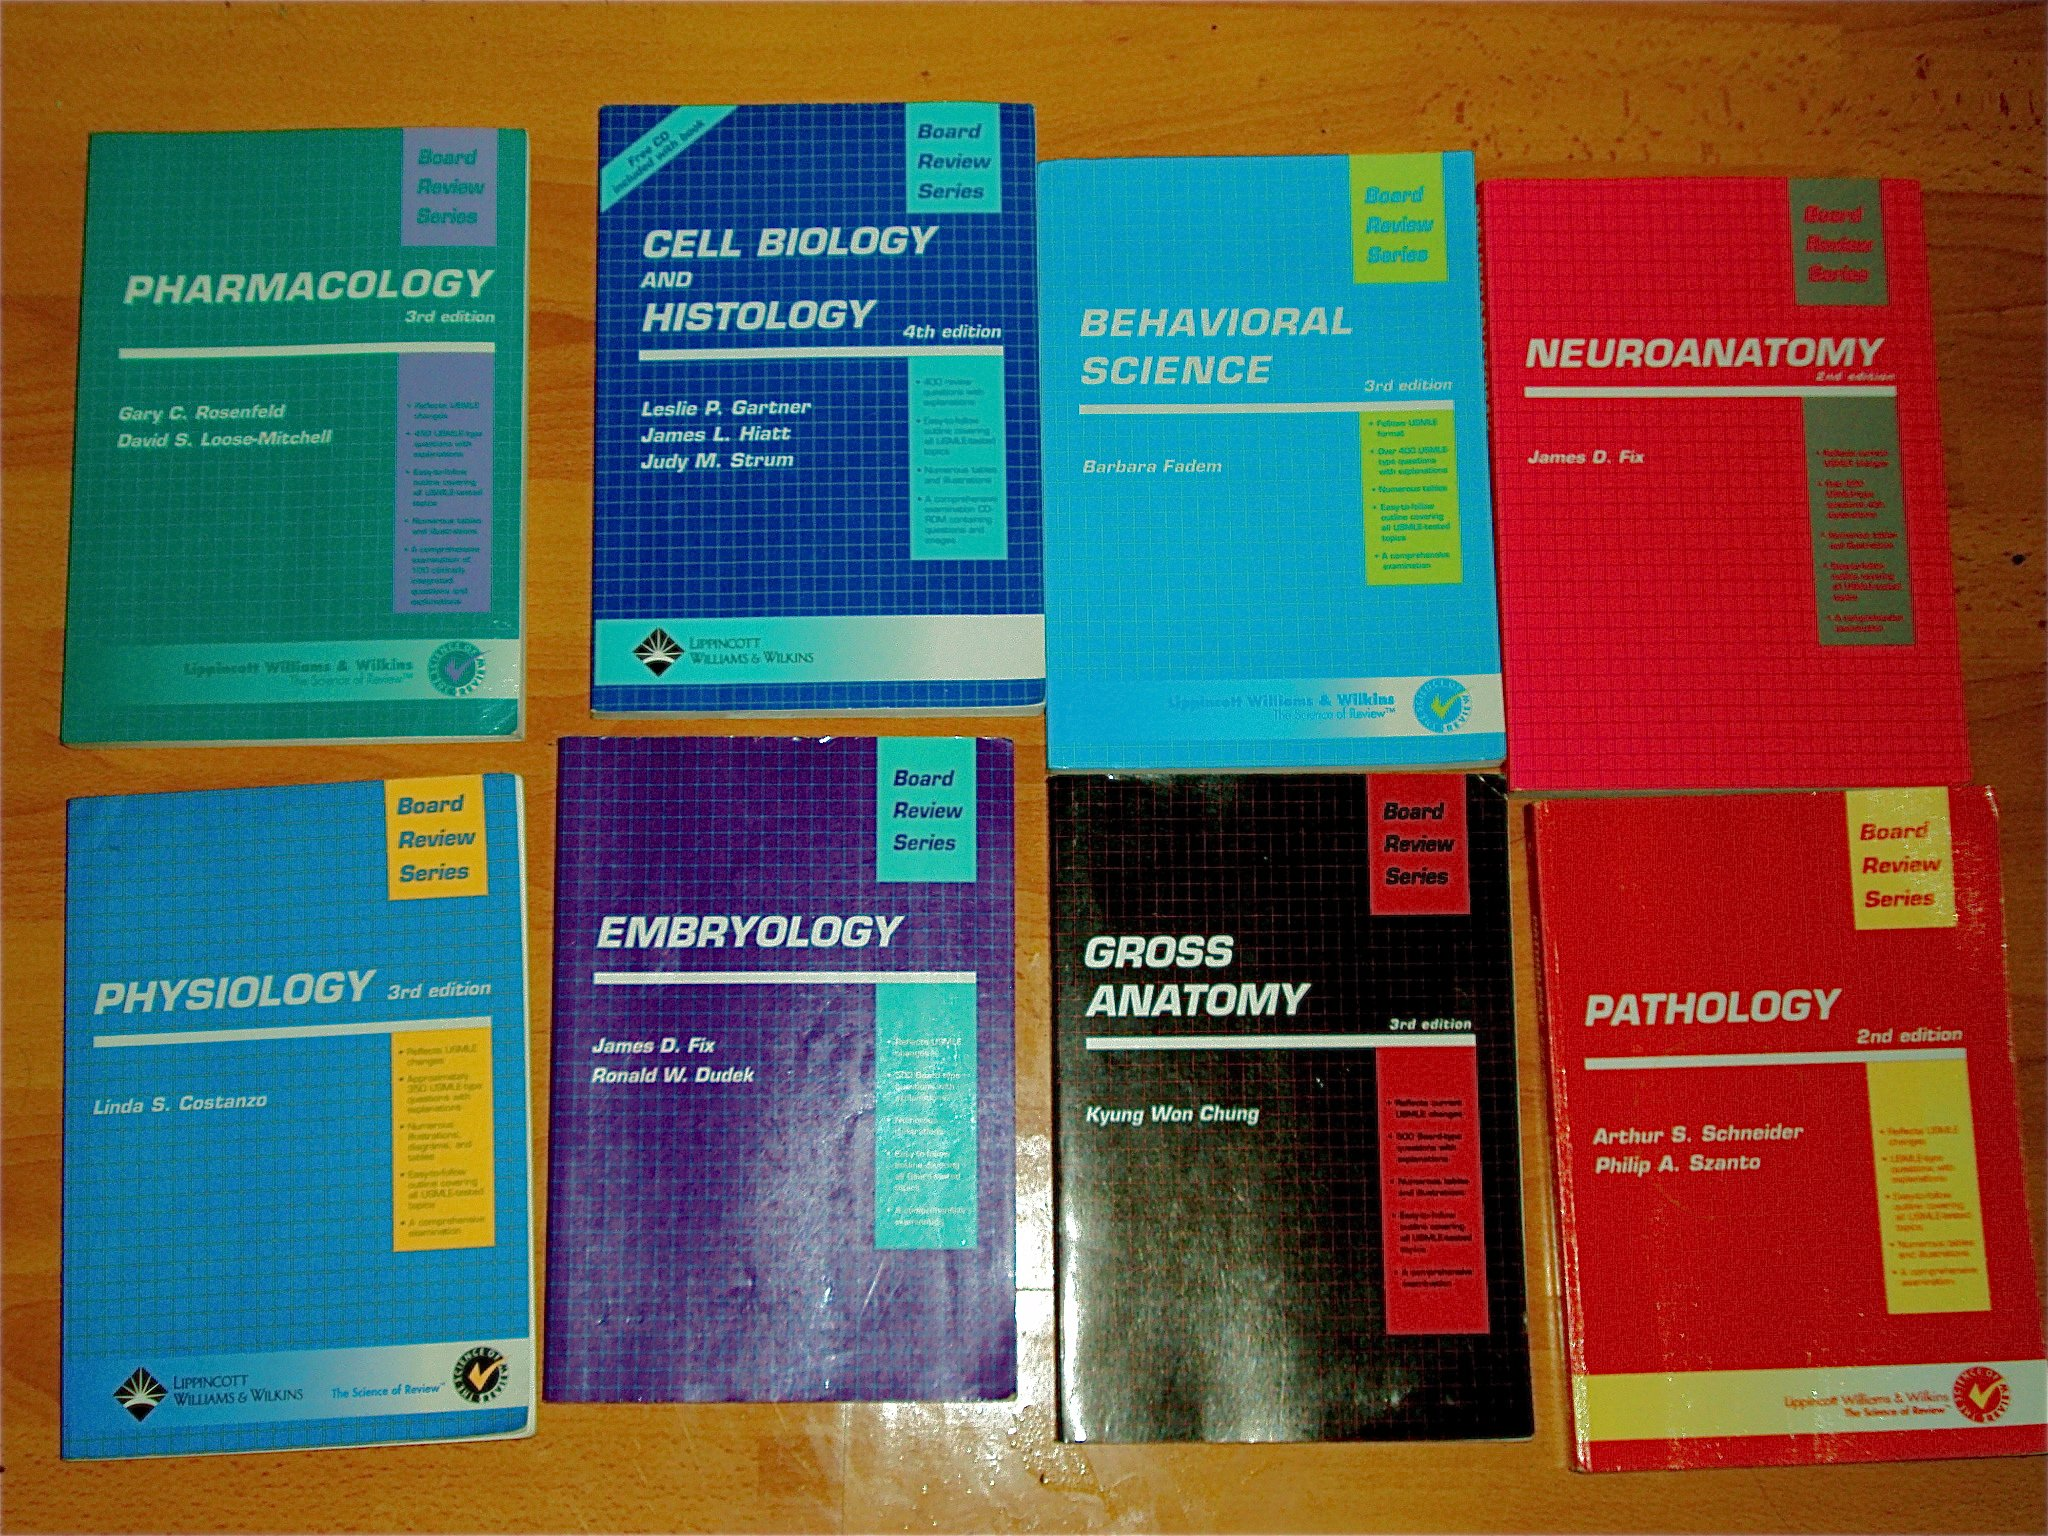 USMLE Step 1 Board Review Series Set (BRS): 10 books: Pathology